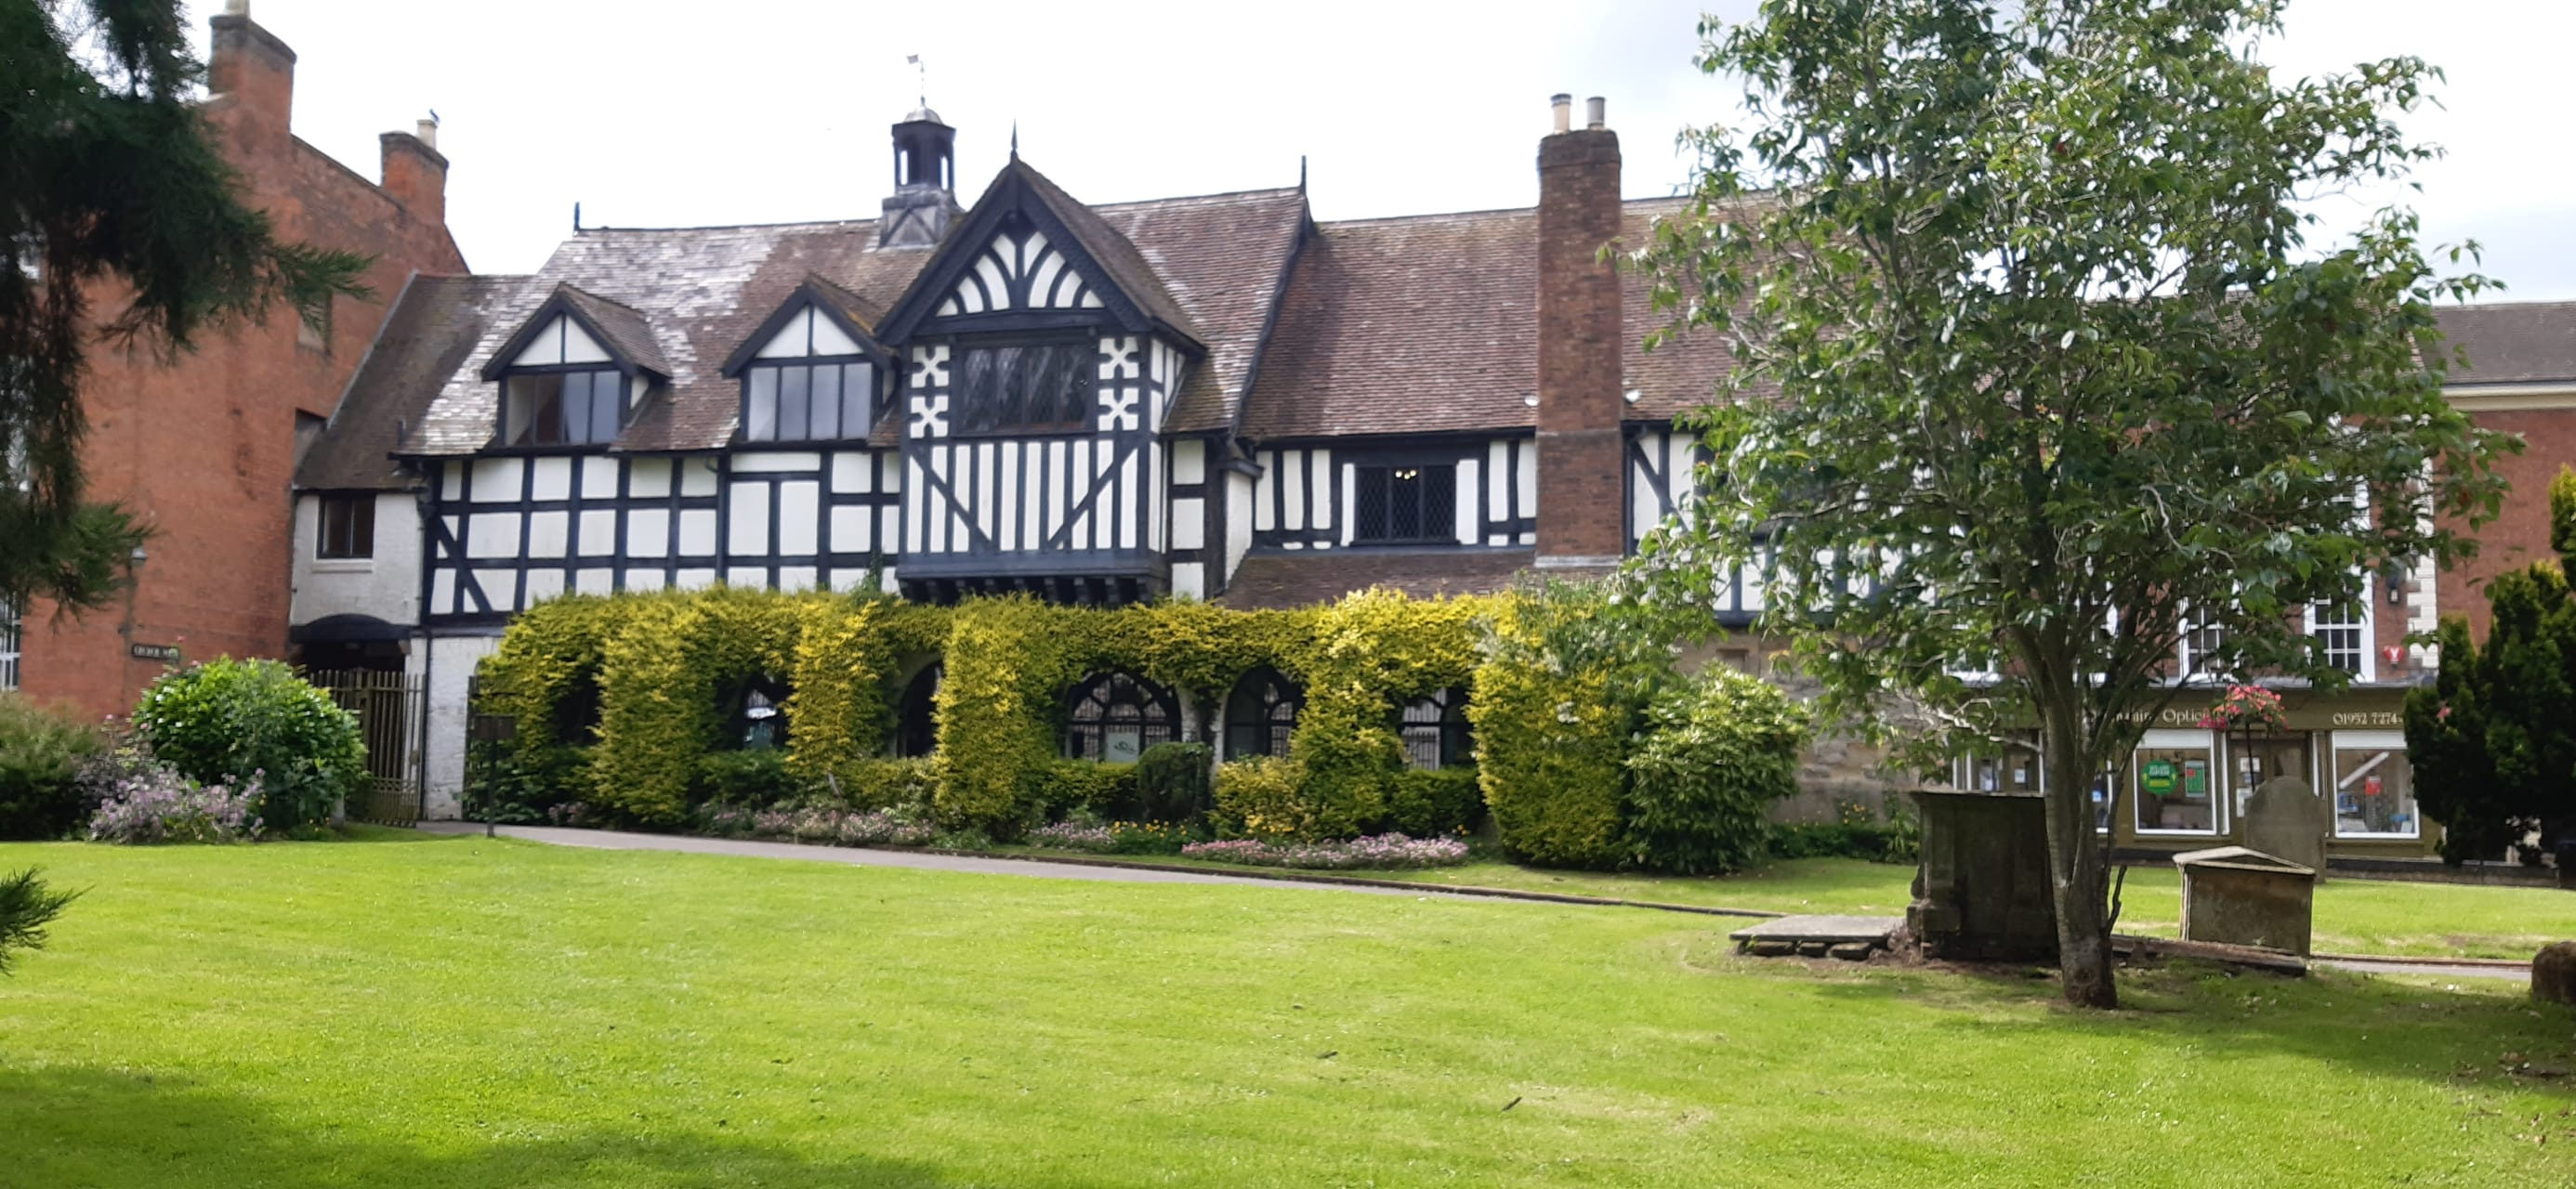 Shropshire - Much Wenlock - Birthplace of the Modern Olympics